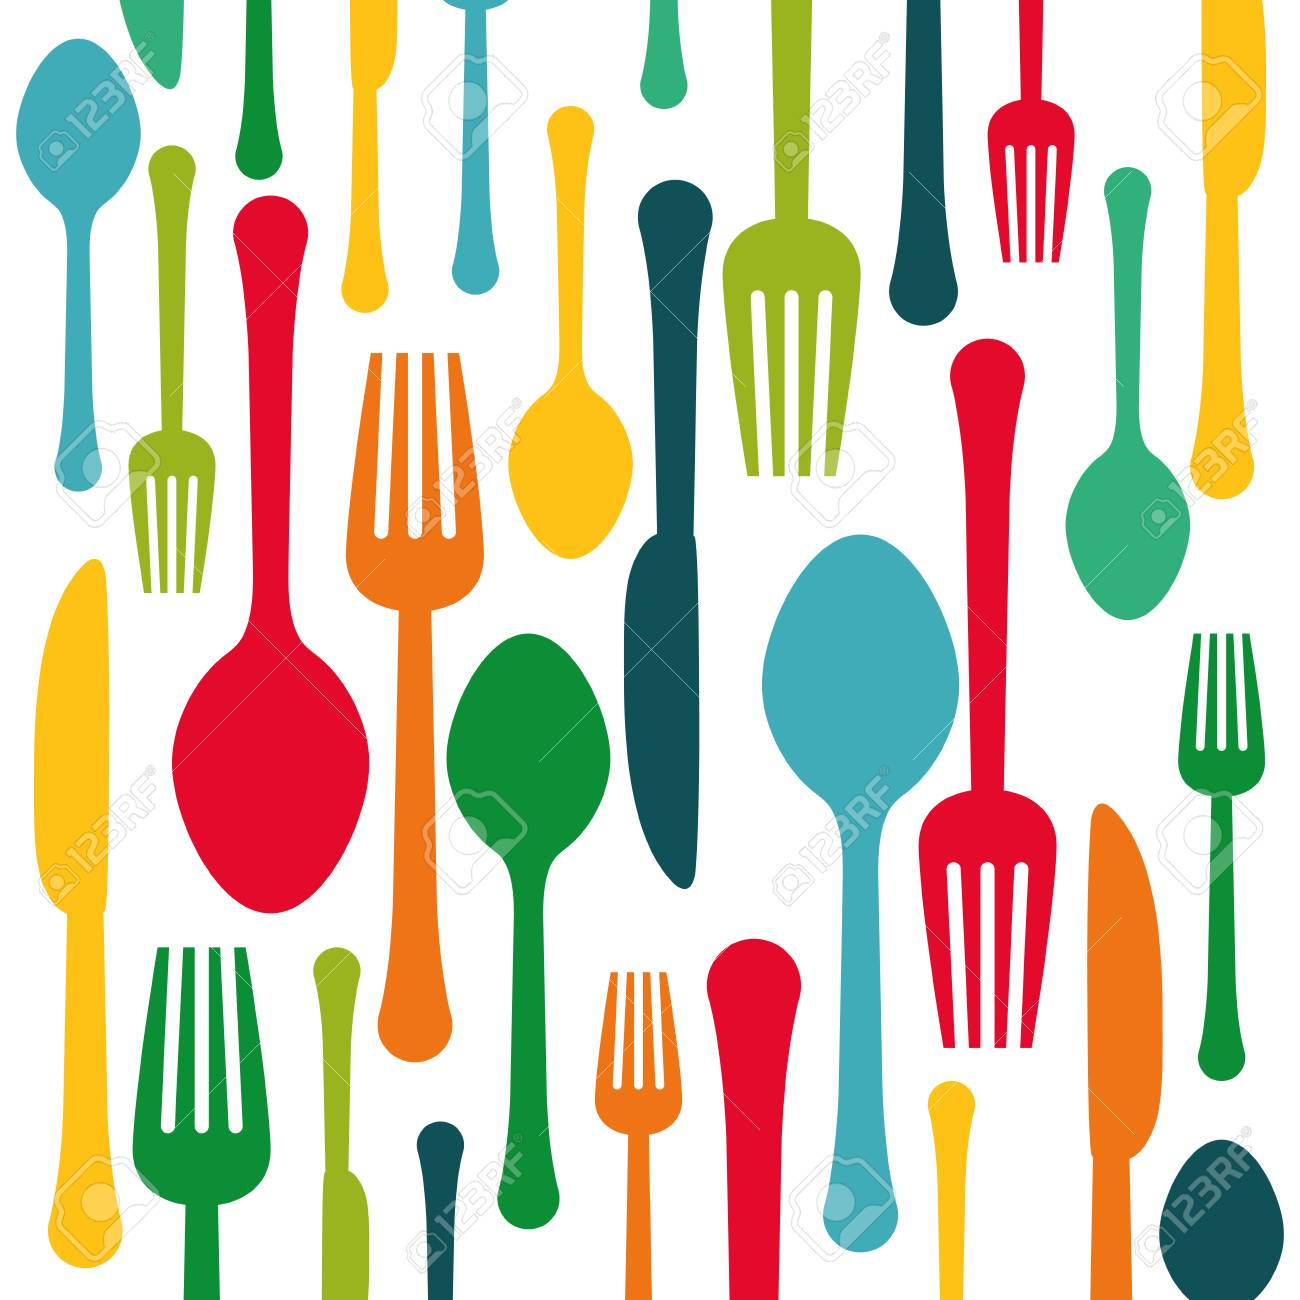 colorful kitchen utensils. Colorful Kitchen Utensils Background Icon Image, Vector Illustration Stock - 70352284 E